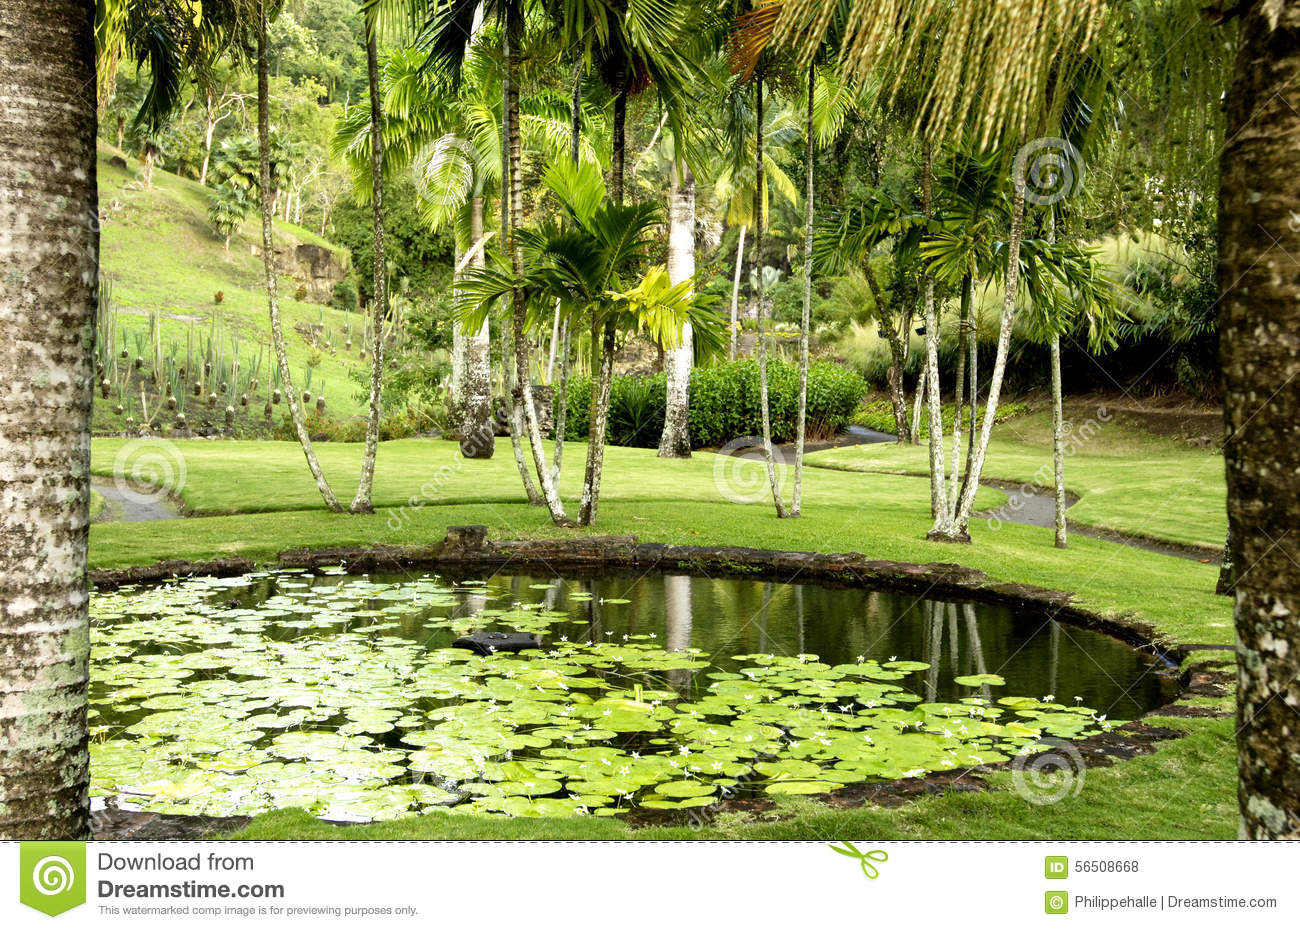 Jardin pittoresque d 39 anse latouche d 39 habitation martinique for Jardin pittoresque